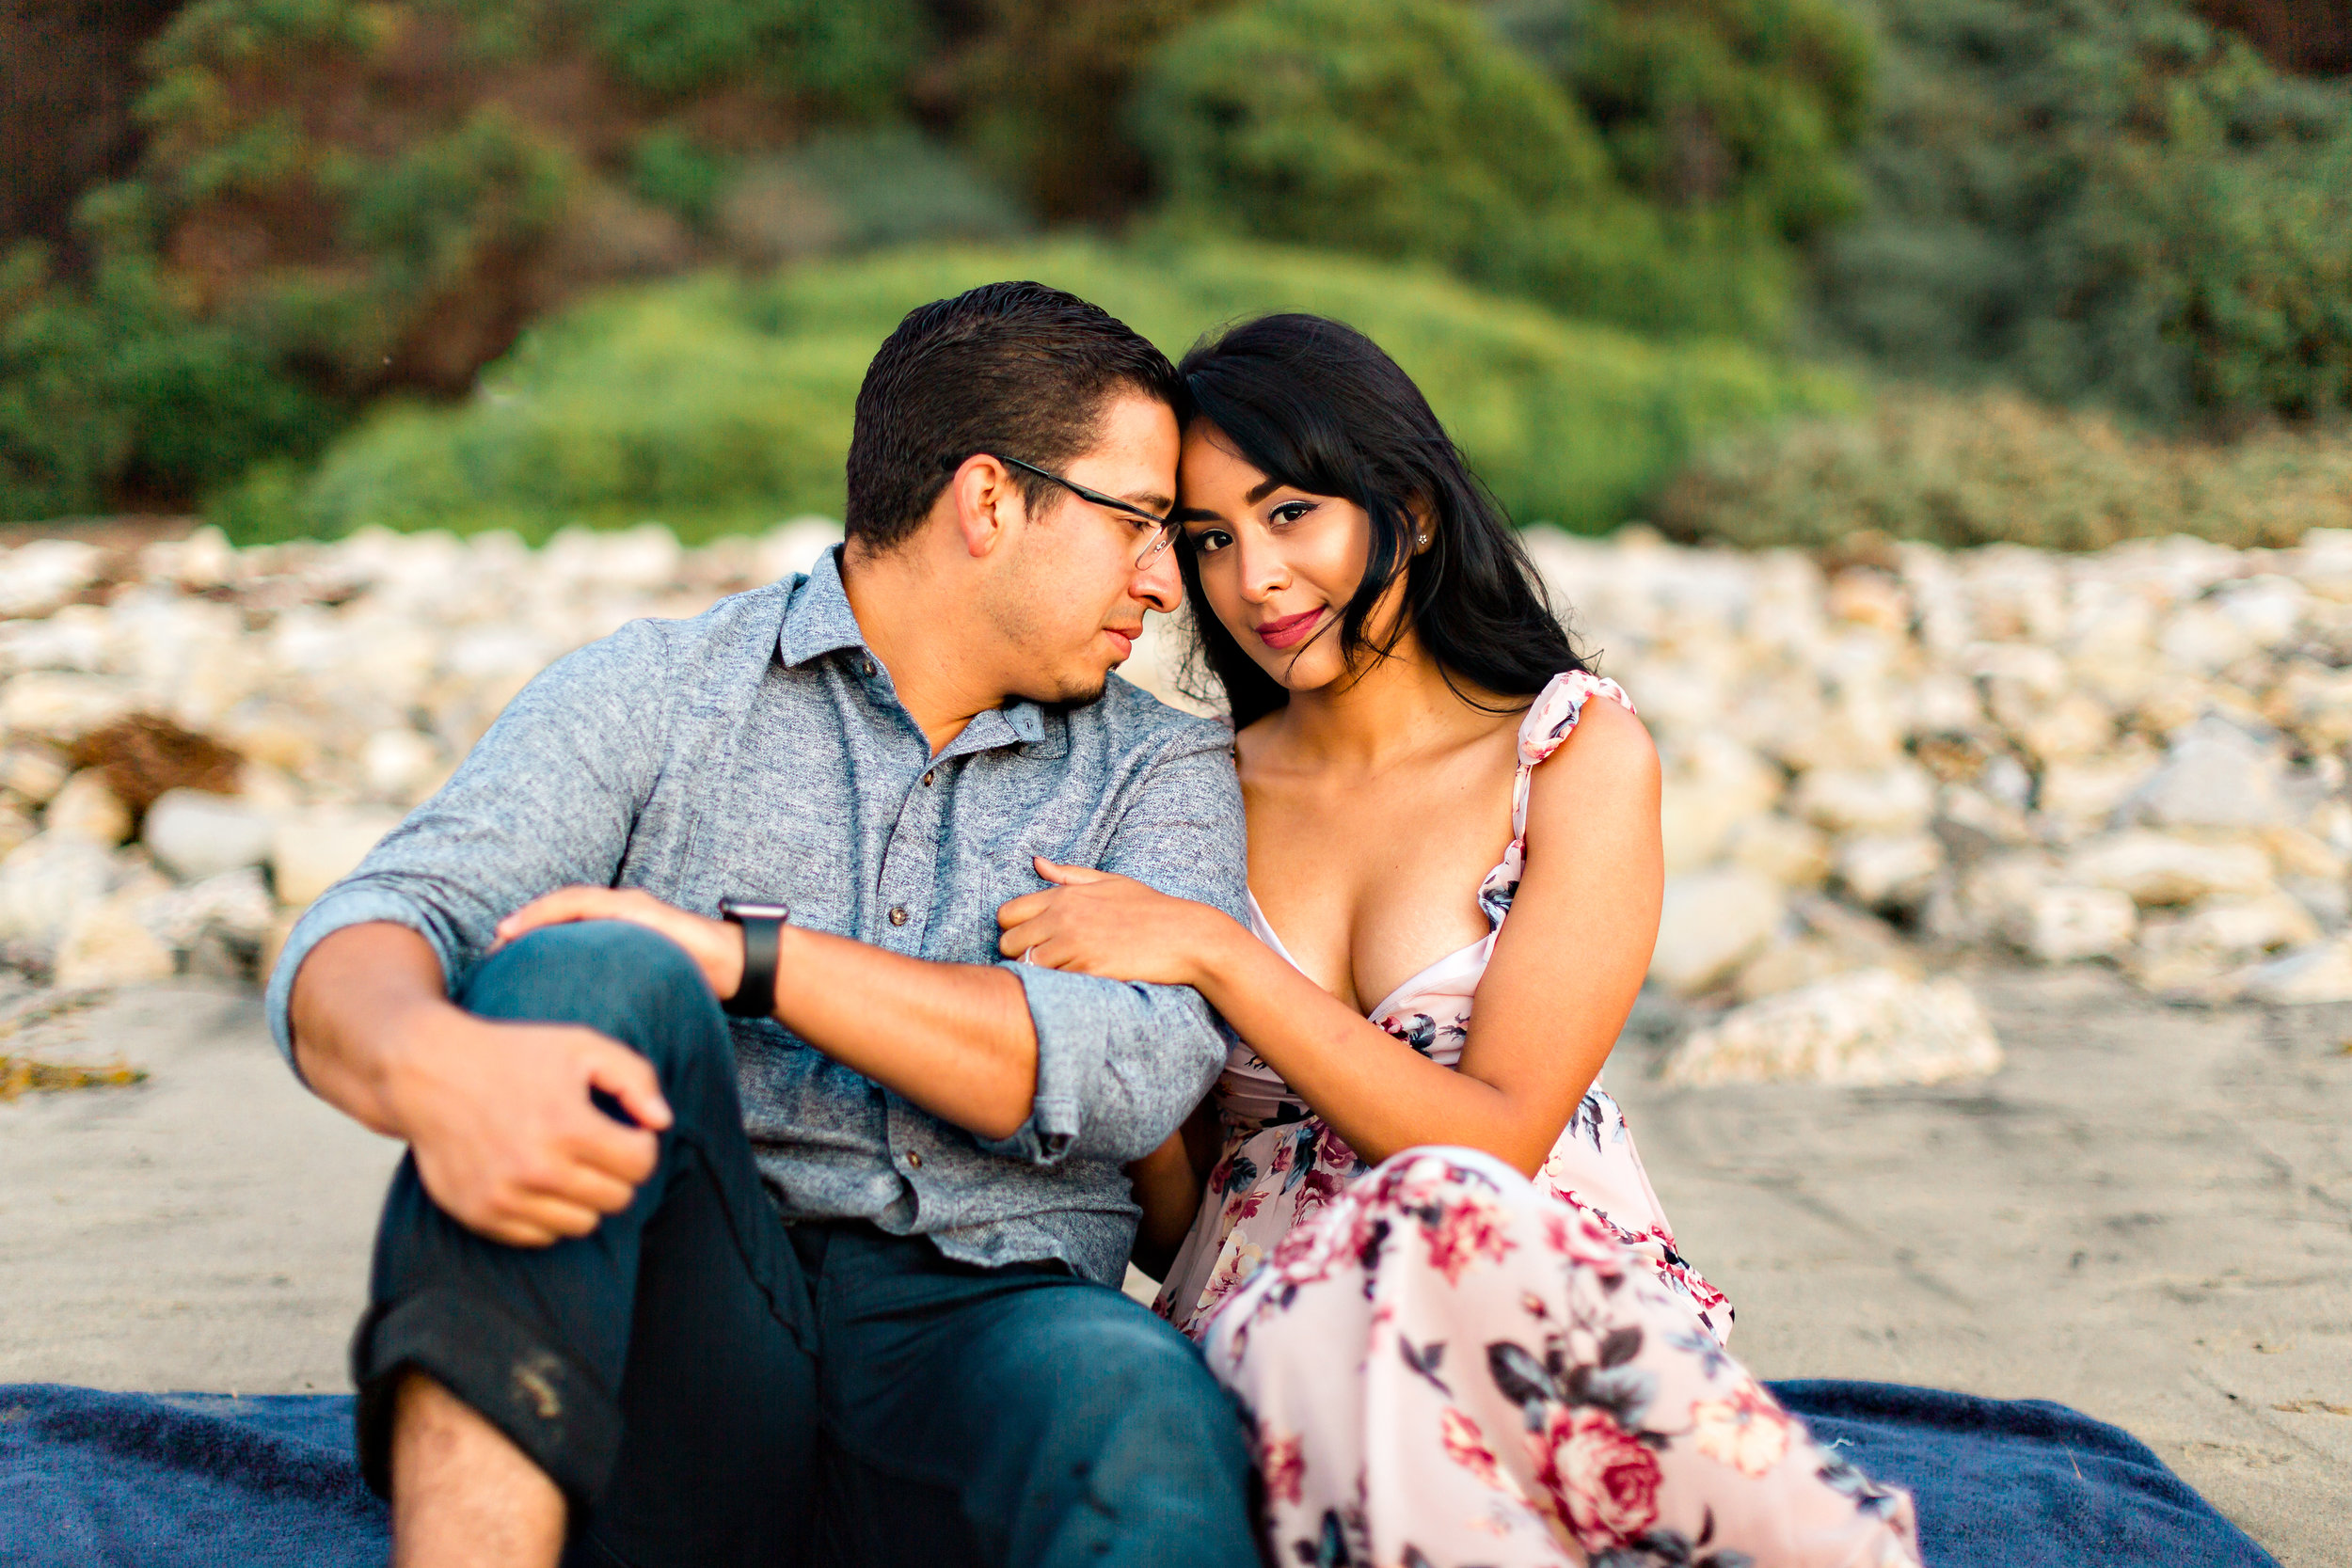 Palos_Verdes_engagement_photo-0057.jpg